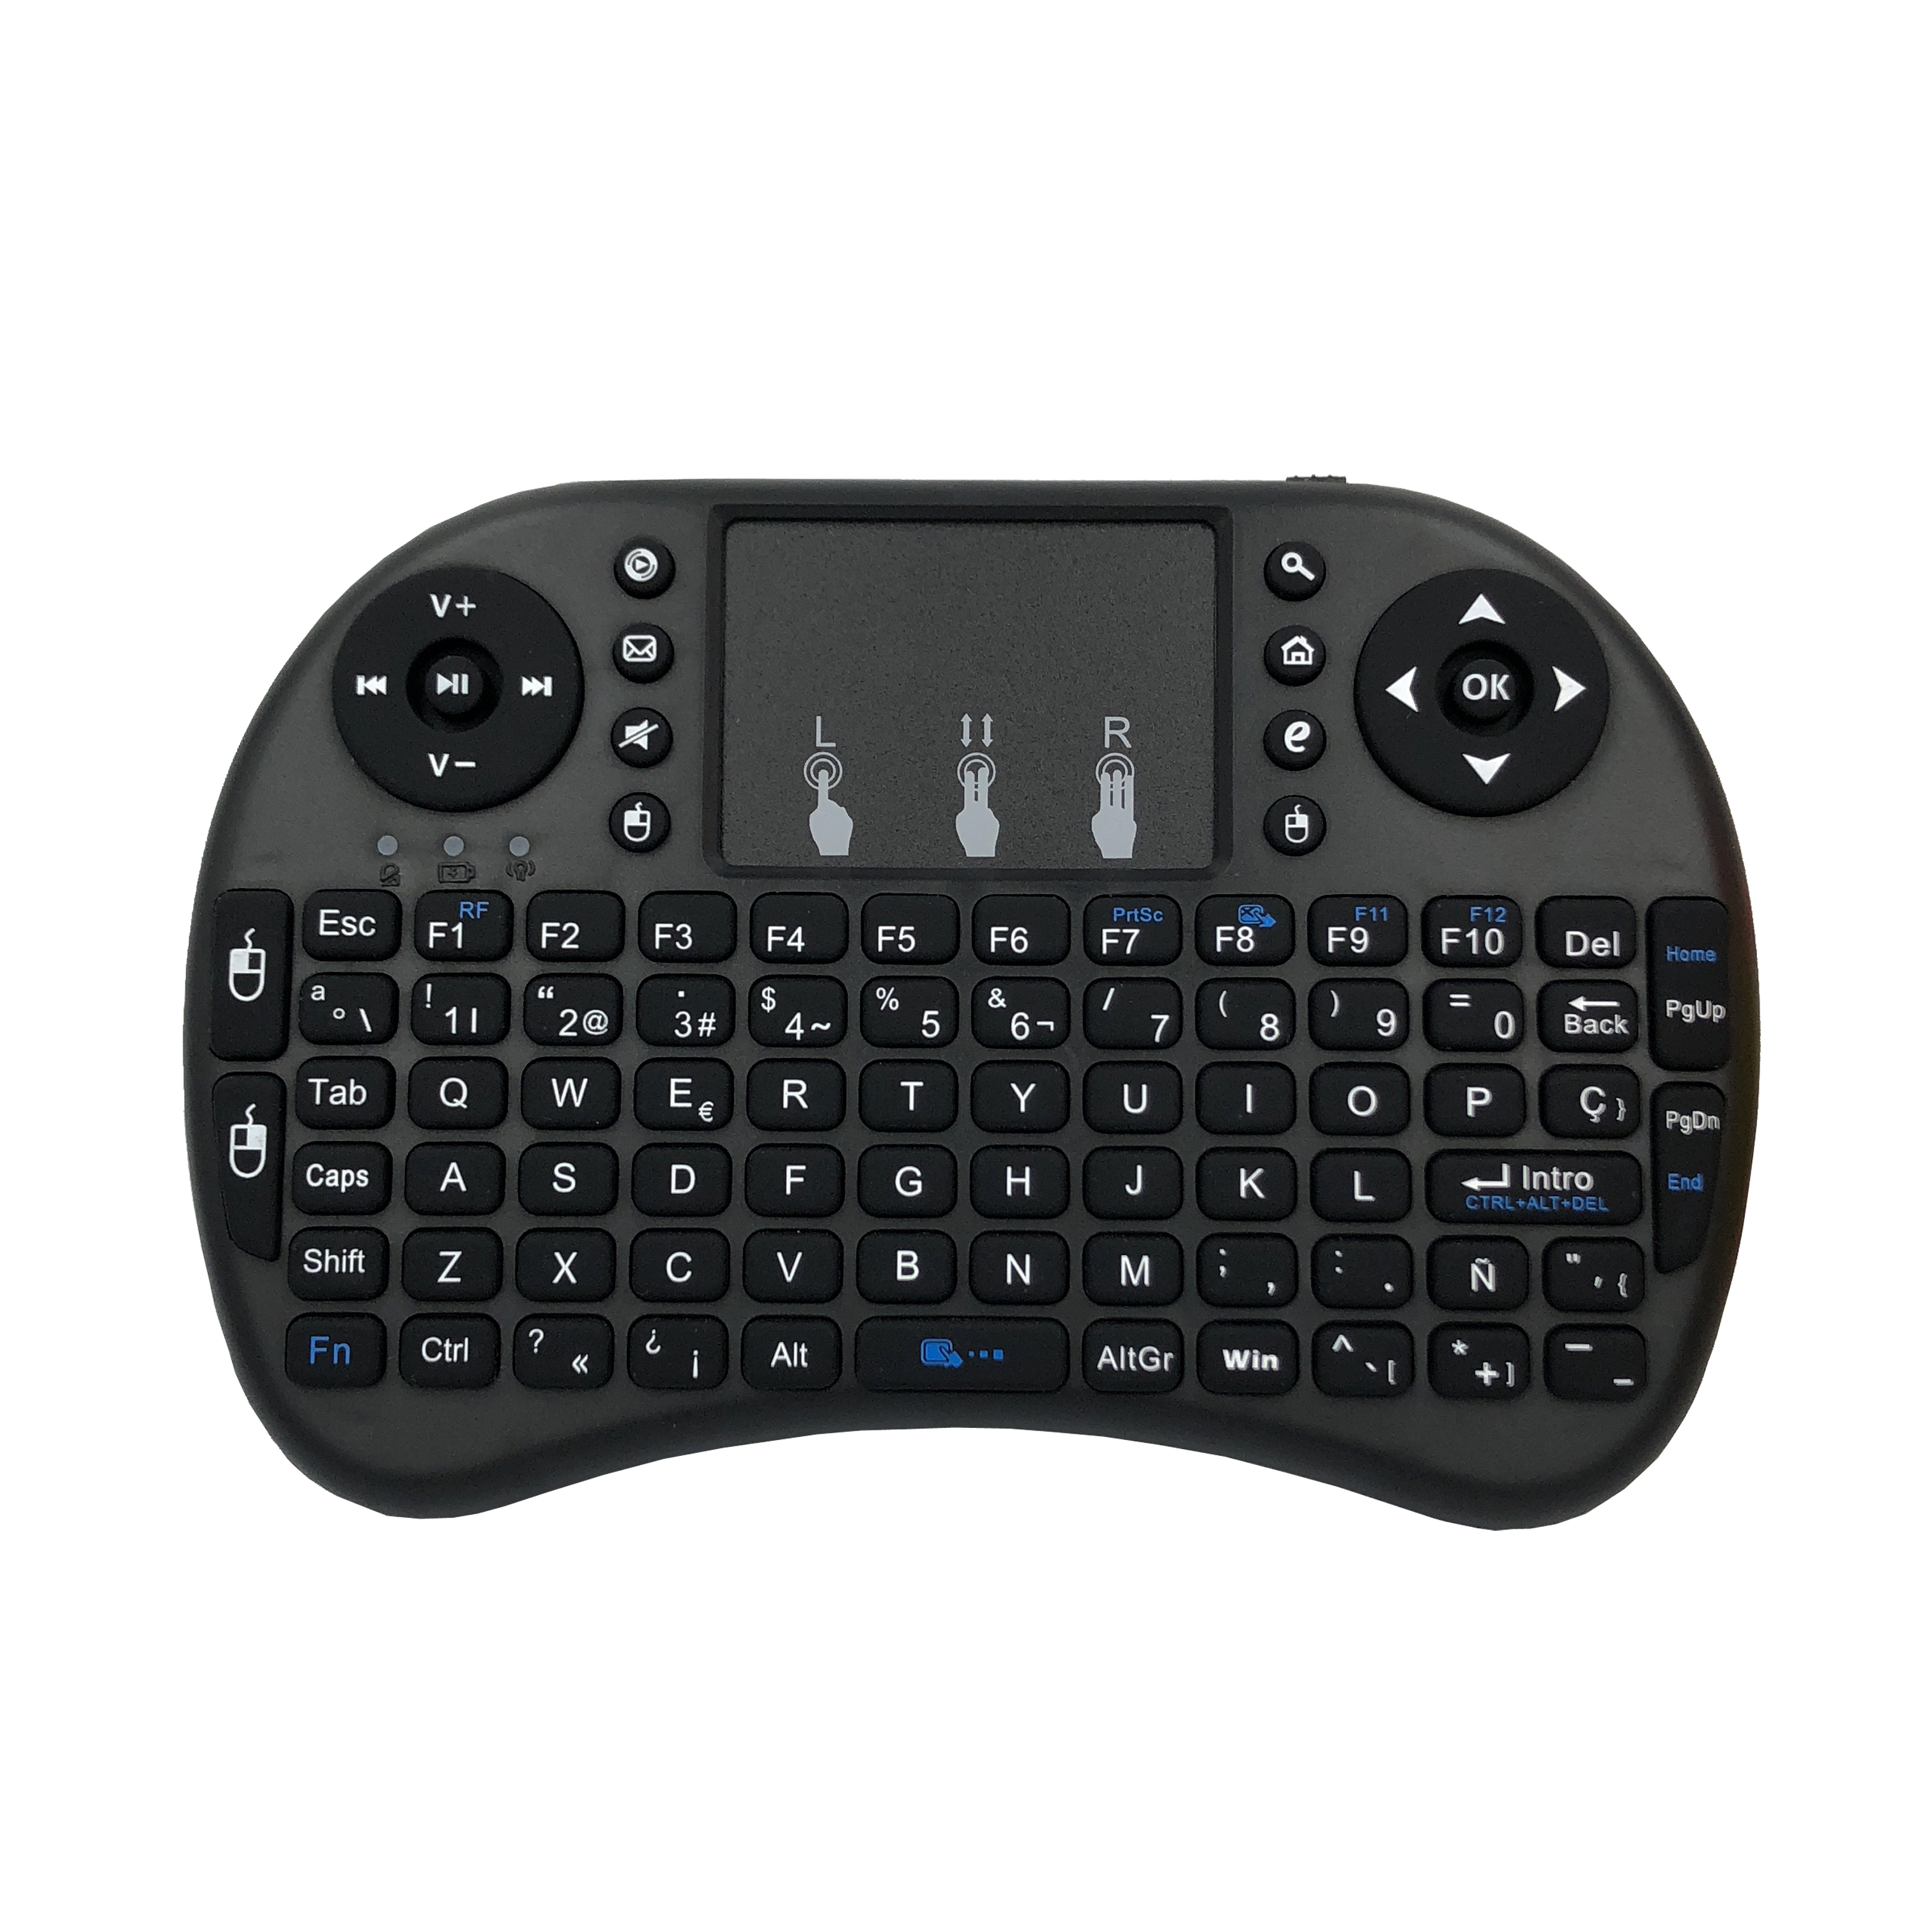 Image 5 - Spanish i8 mini keyboard 3 color backlit i8+ lithium battery backlight Air Mouse Remote Control Touchpad Handheld TV BOX Laptop-in Keyboards from Computer & Office